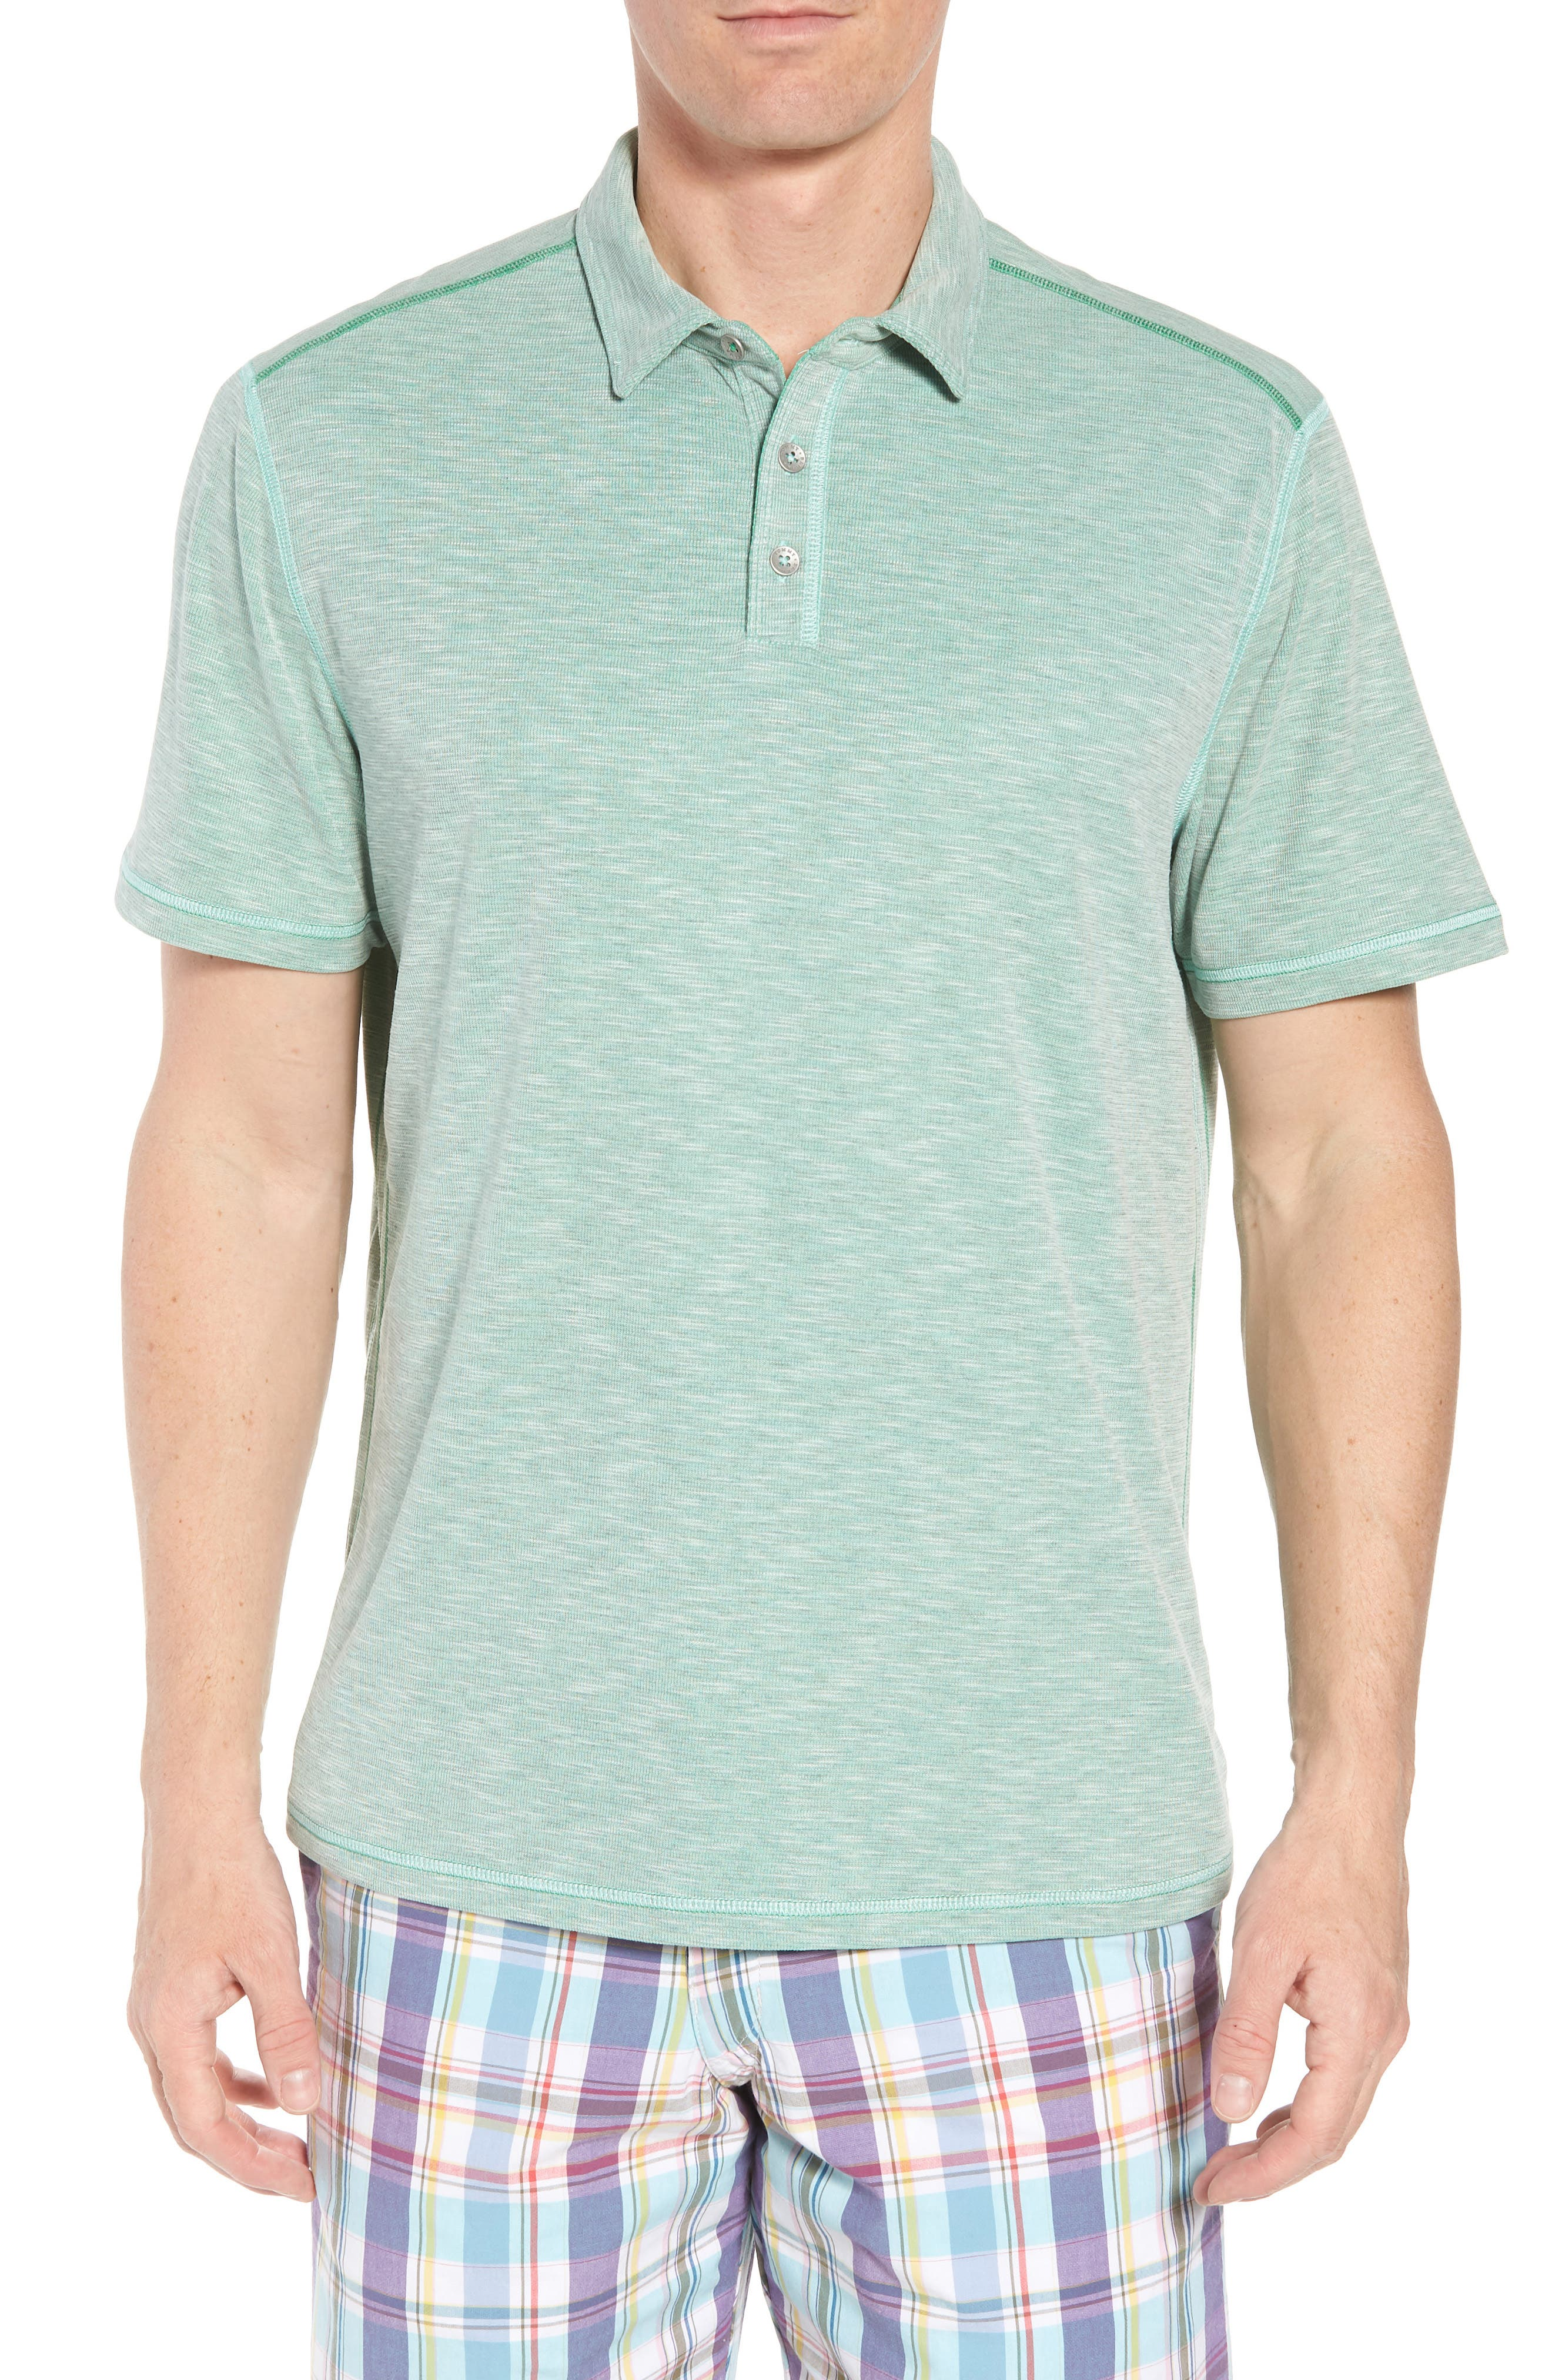 Flip Tide Tee Spectator Polo,                         Main,                         color, Green Finch